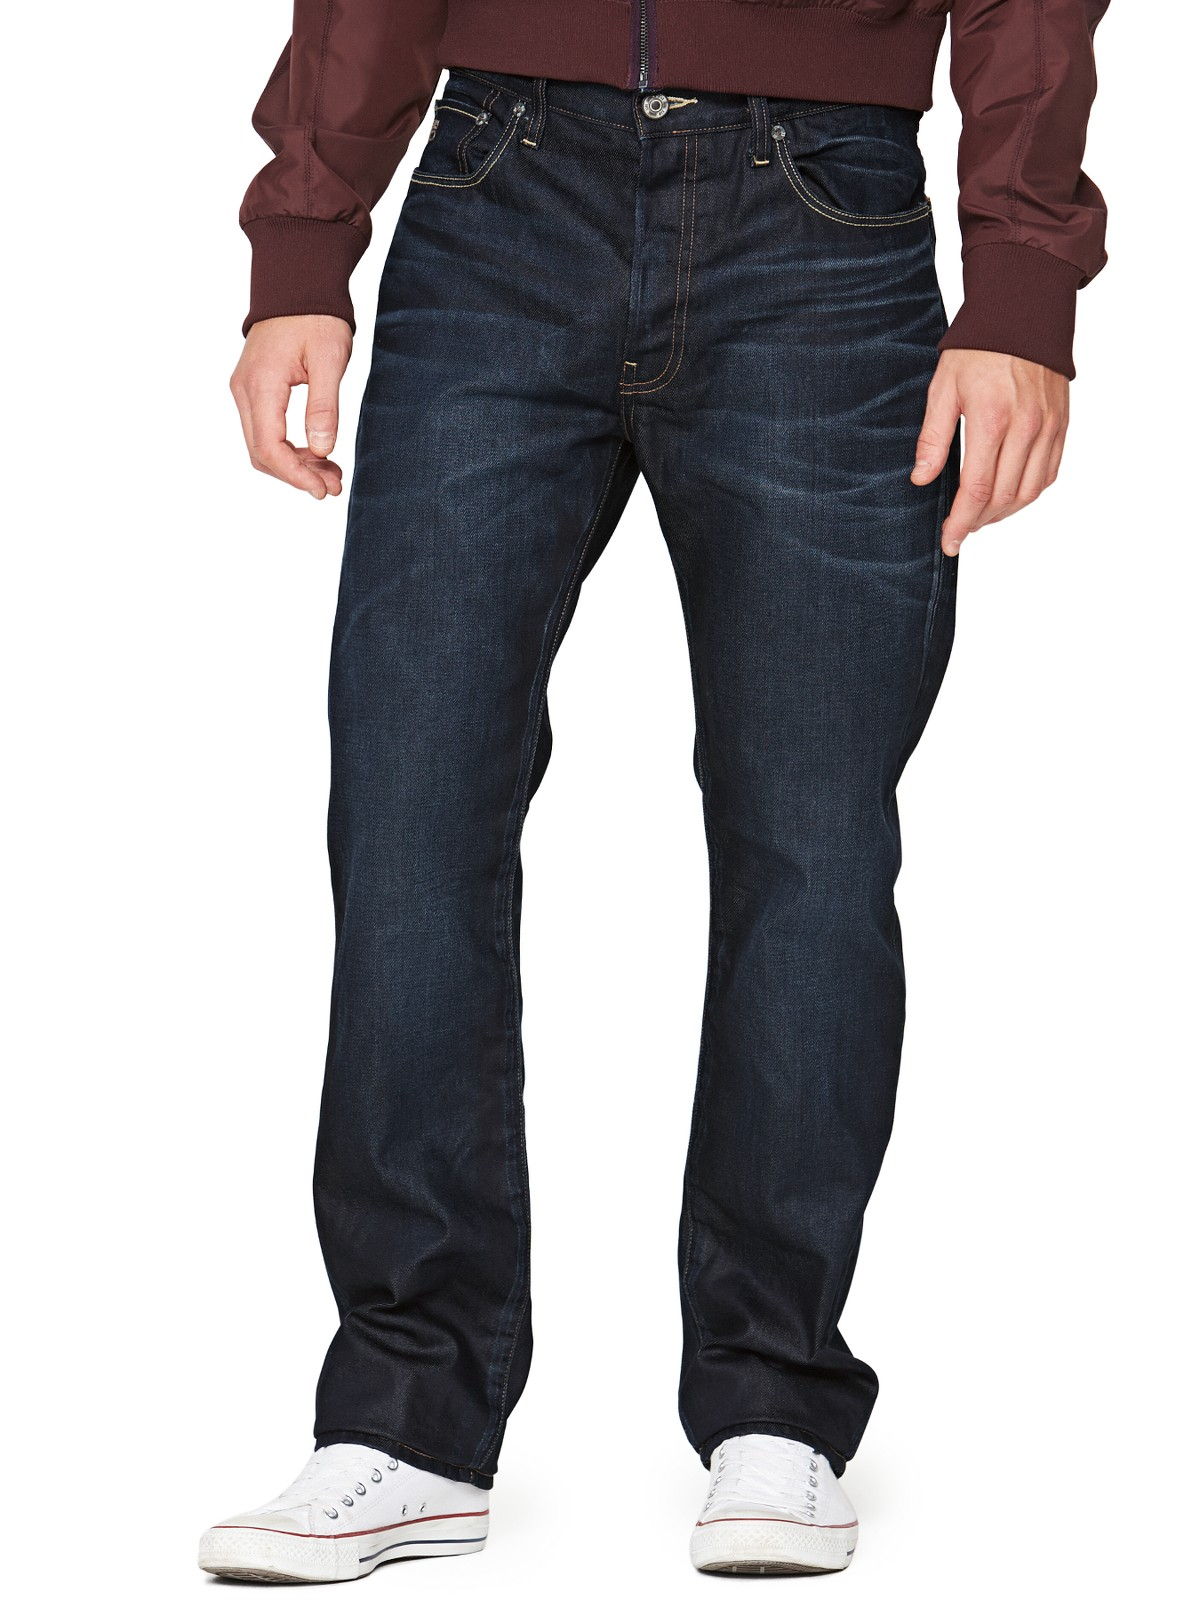 Find raw jeans from a vast selection of Clothing for Men. Get great deals on eBay!